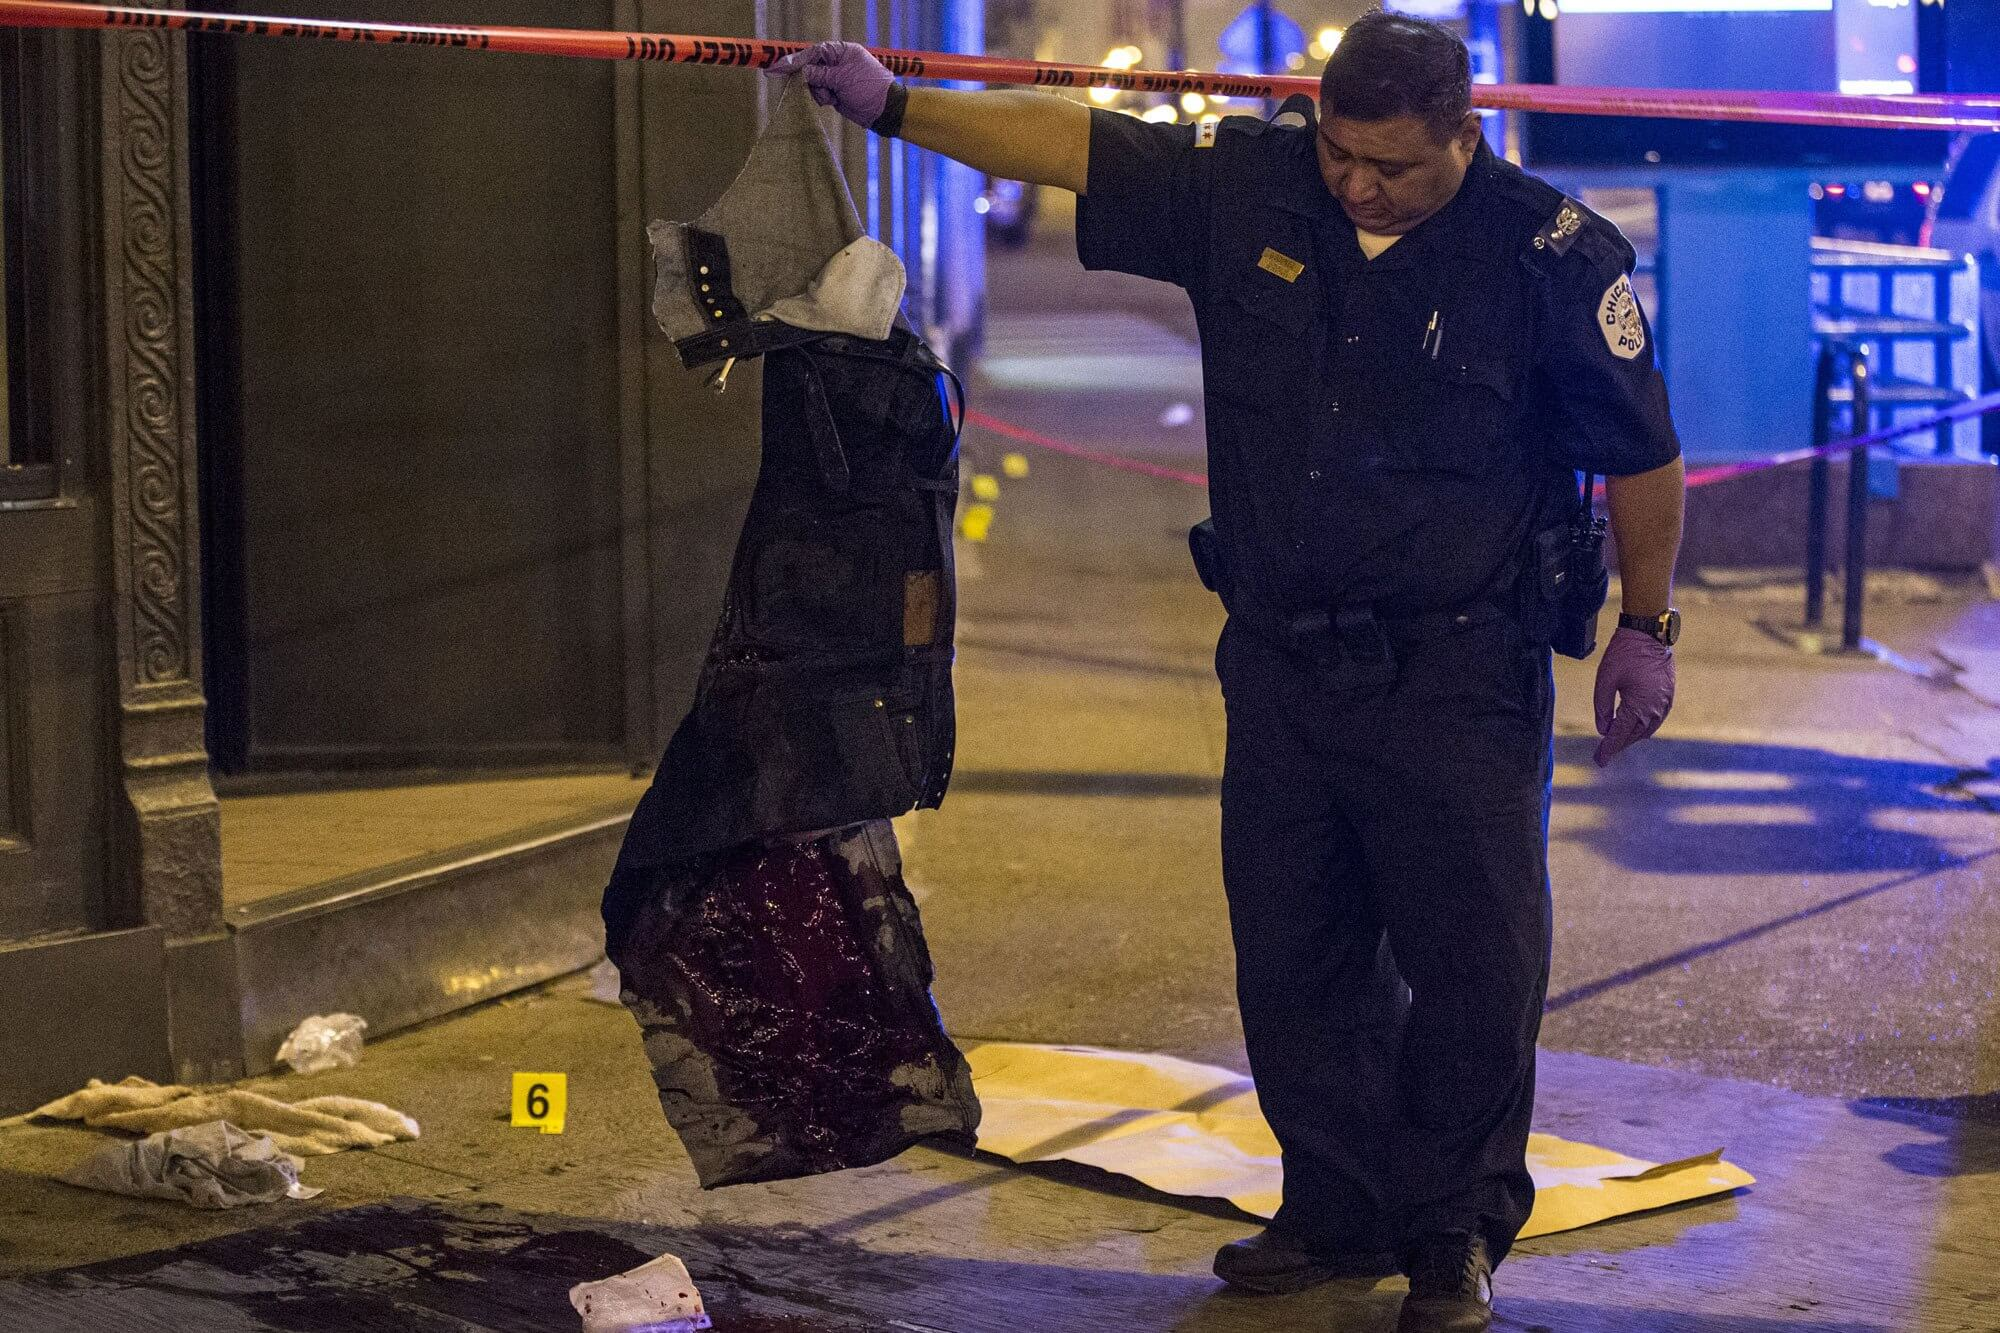 A police officer in Chicago, Illinois inspects bloody clothing belonging to a gunshot victim.